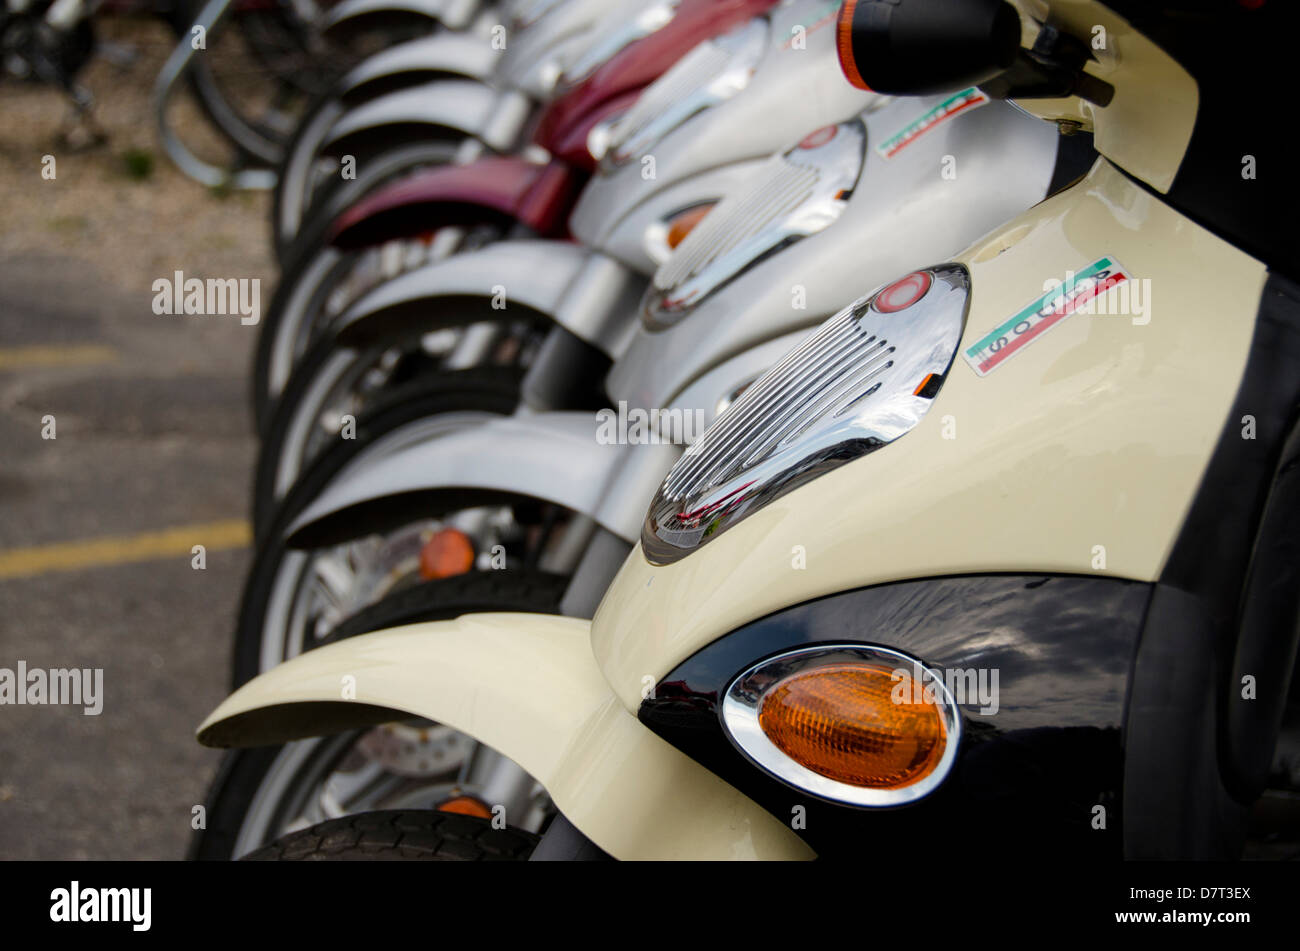 Rhode Island, Block Island. Motor scooters lined up ready for rental. - Stock Image